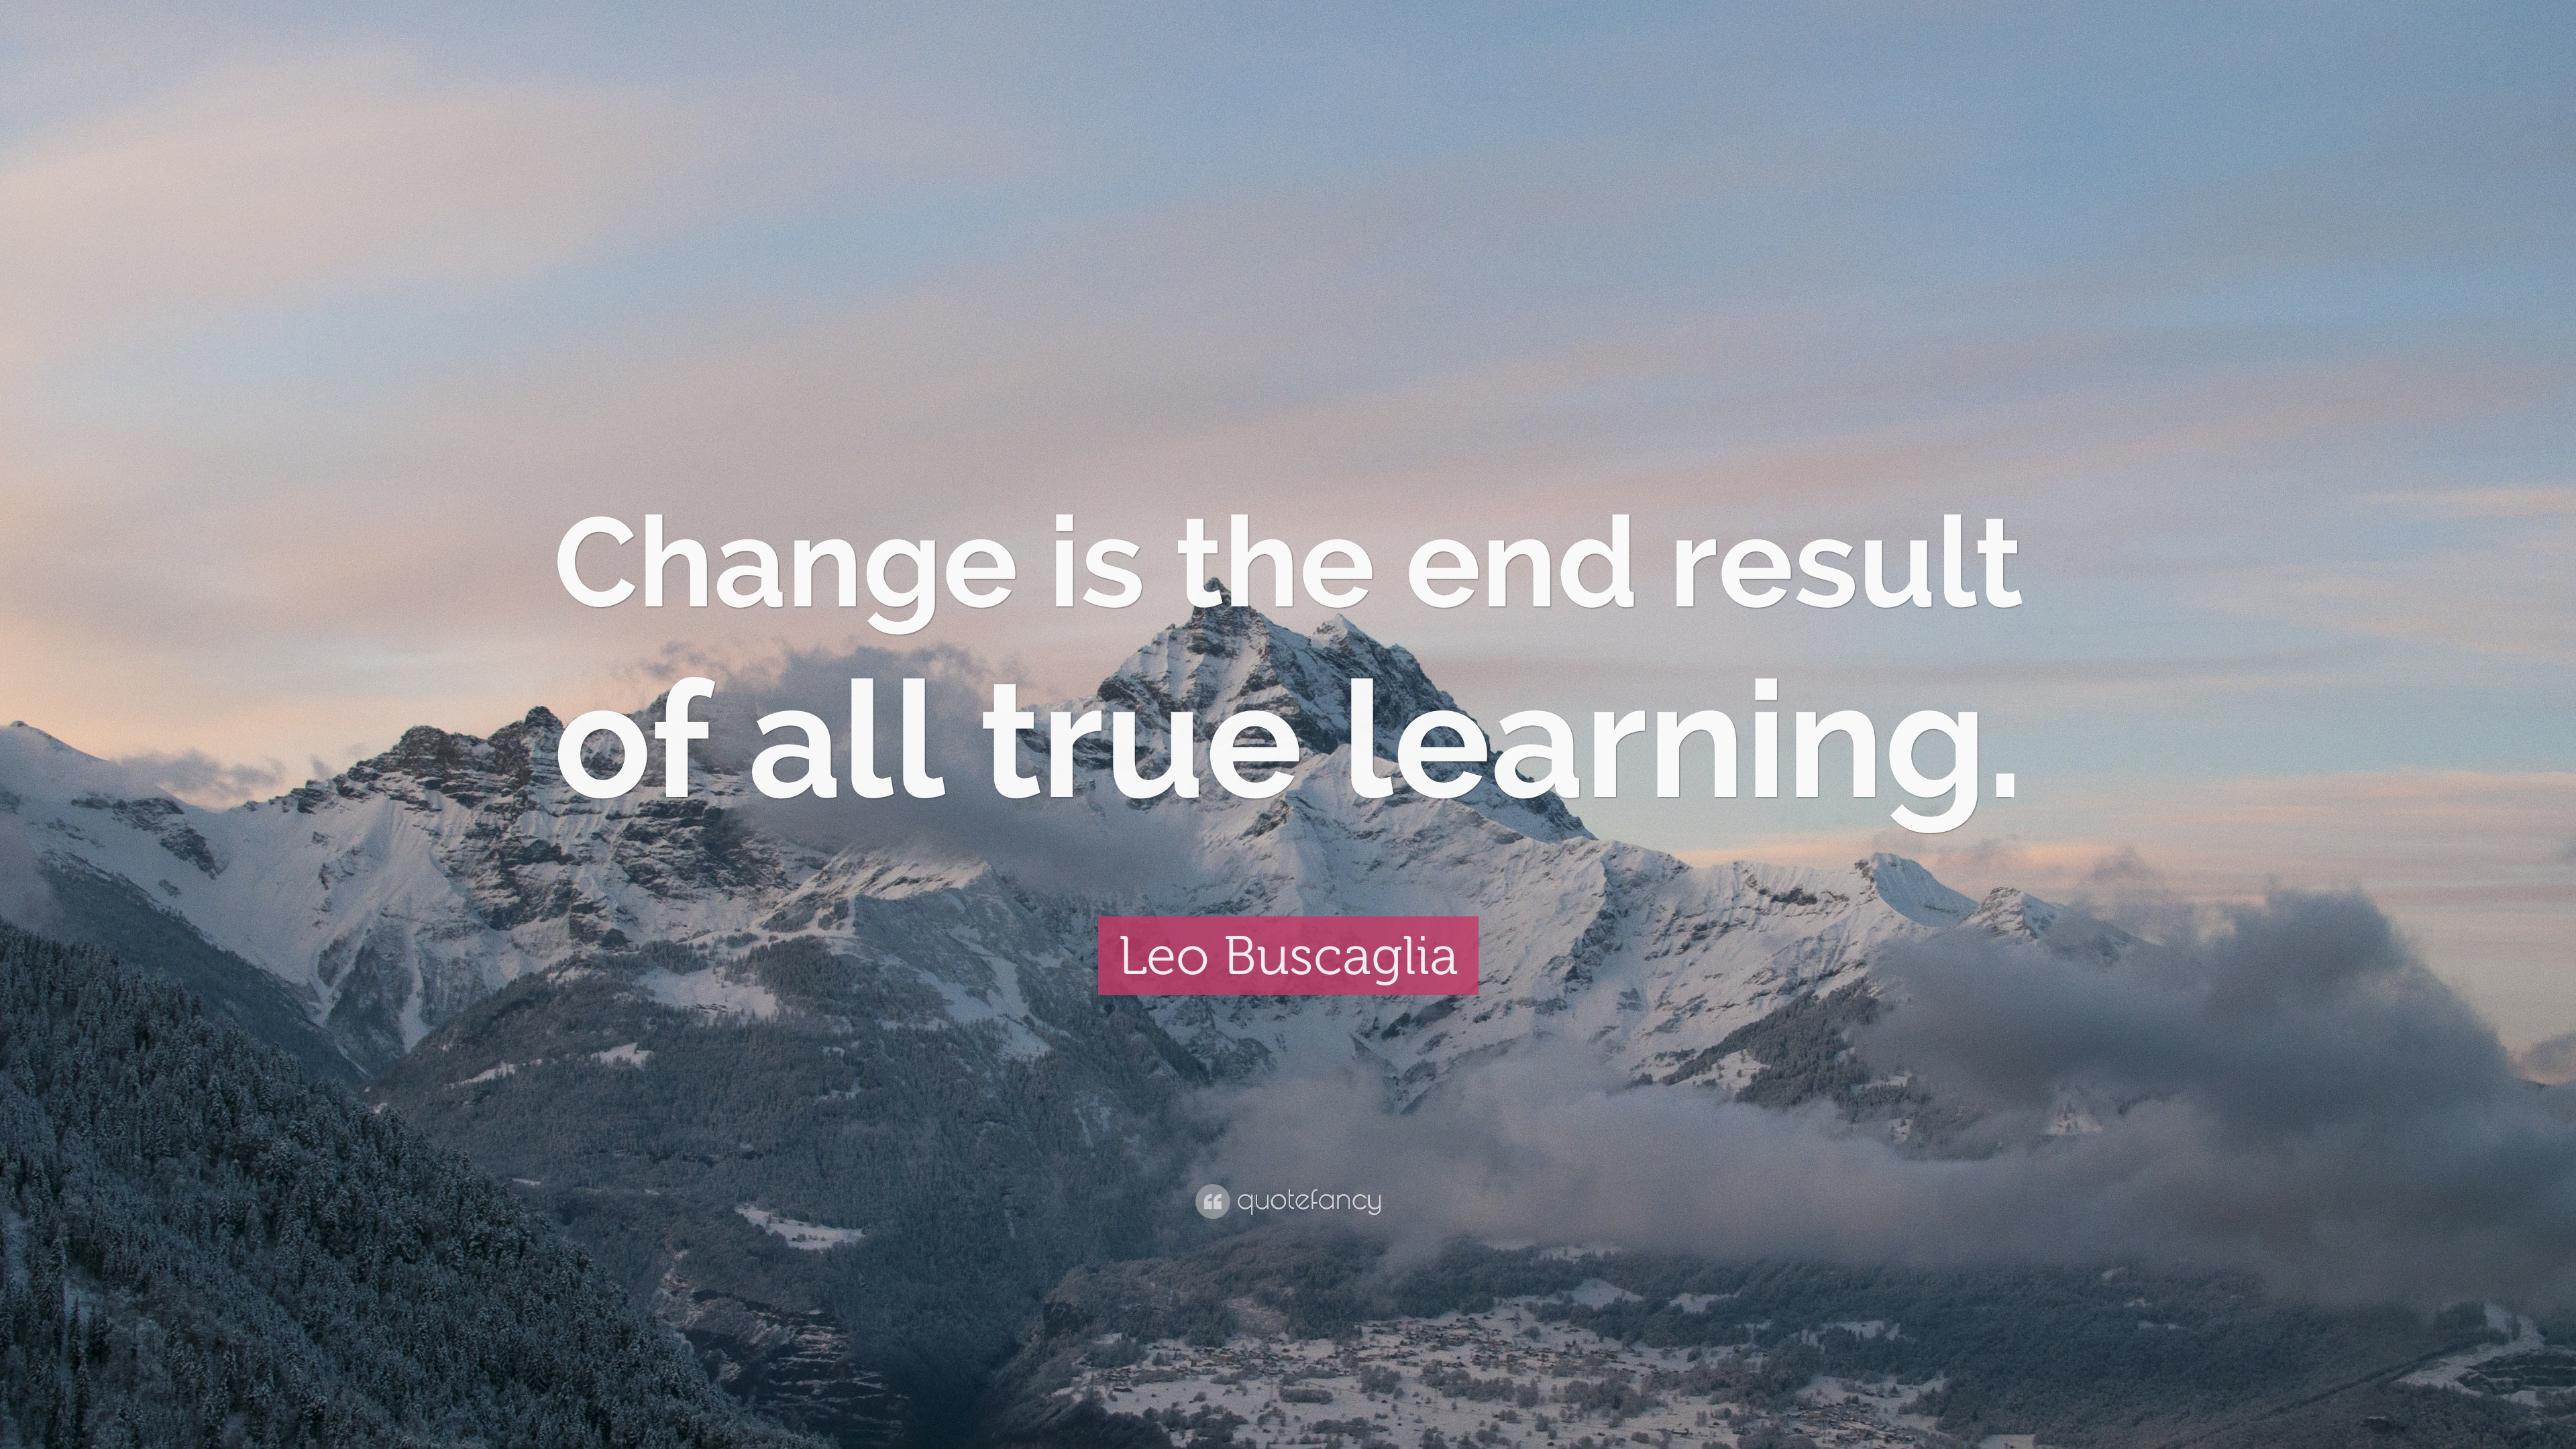 Leo Buscaglia Quote: Change is the end result of all true learning ...